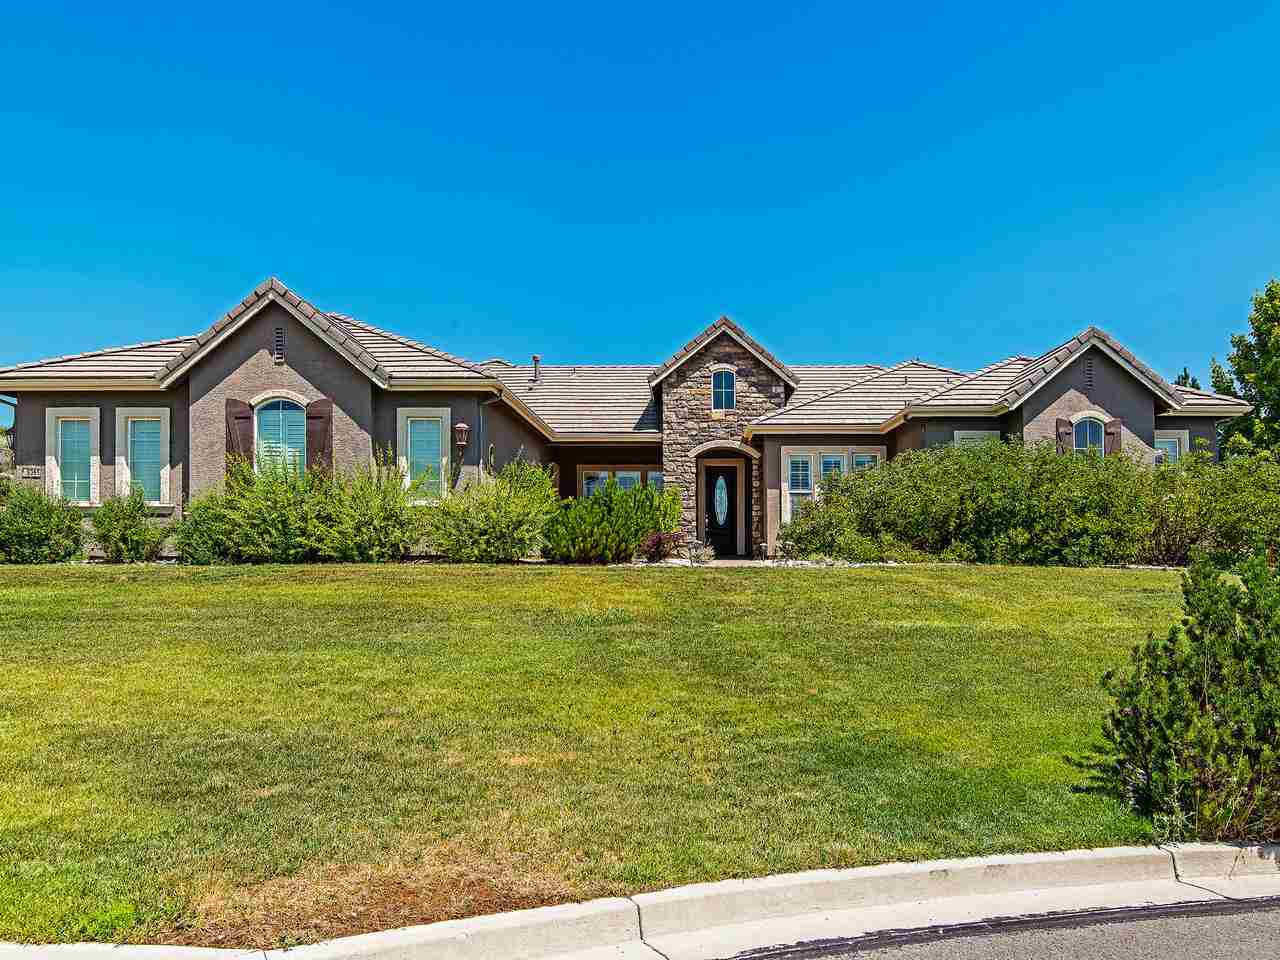 5365 Biarritz Court, Reno, NV 89511-4527 now has a new price of $995,000!